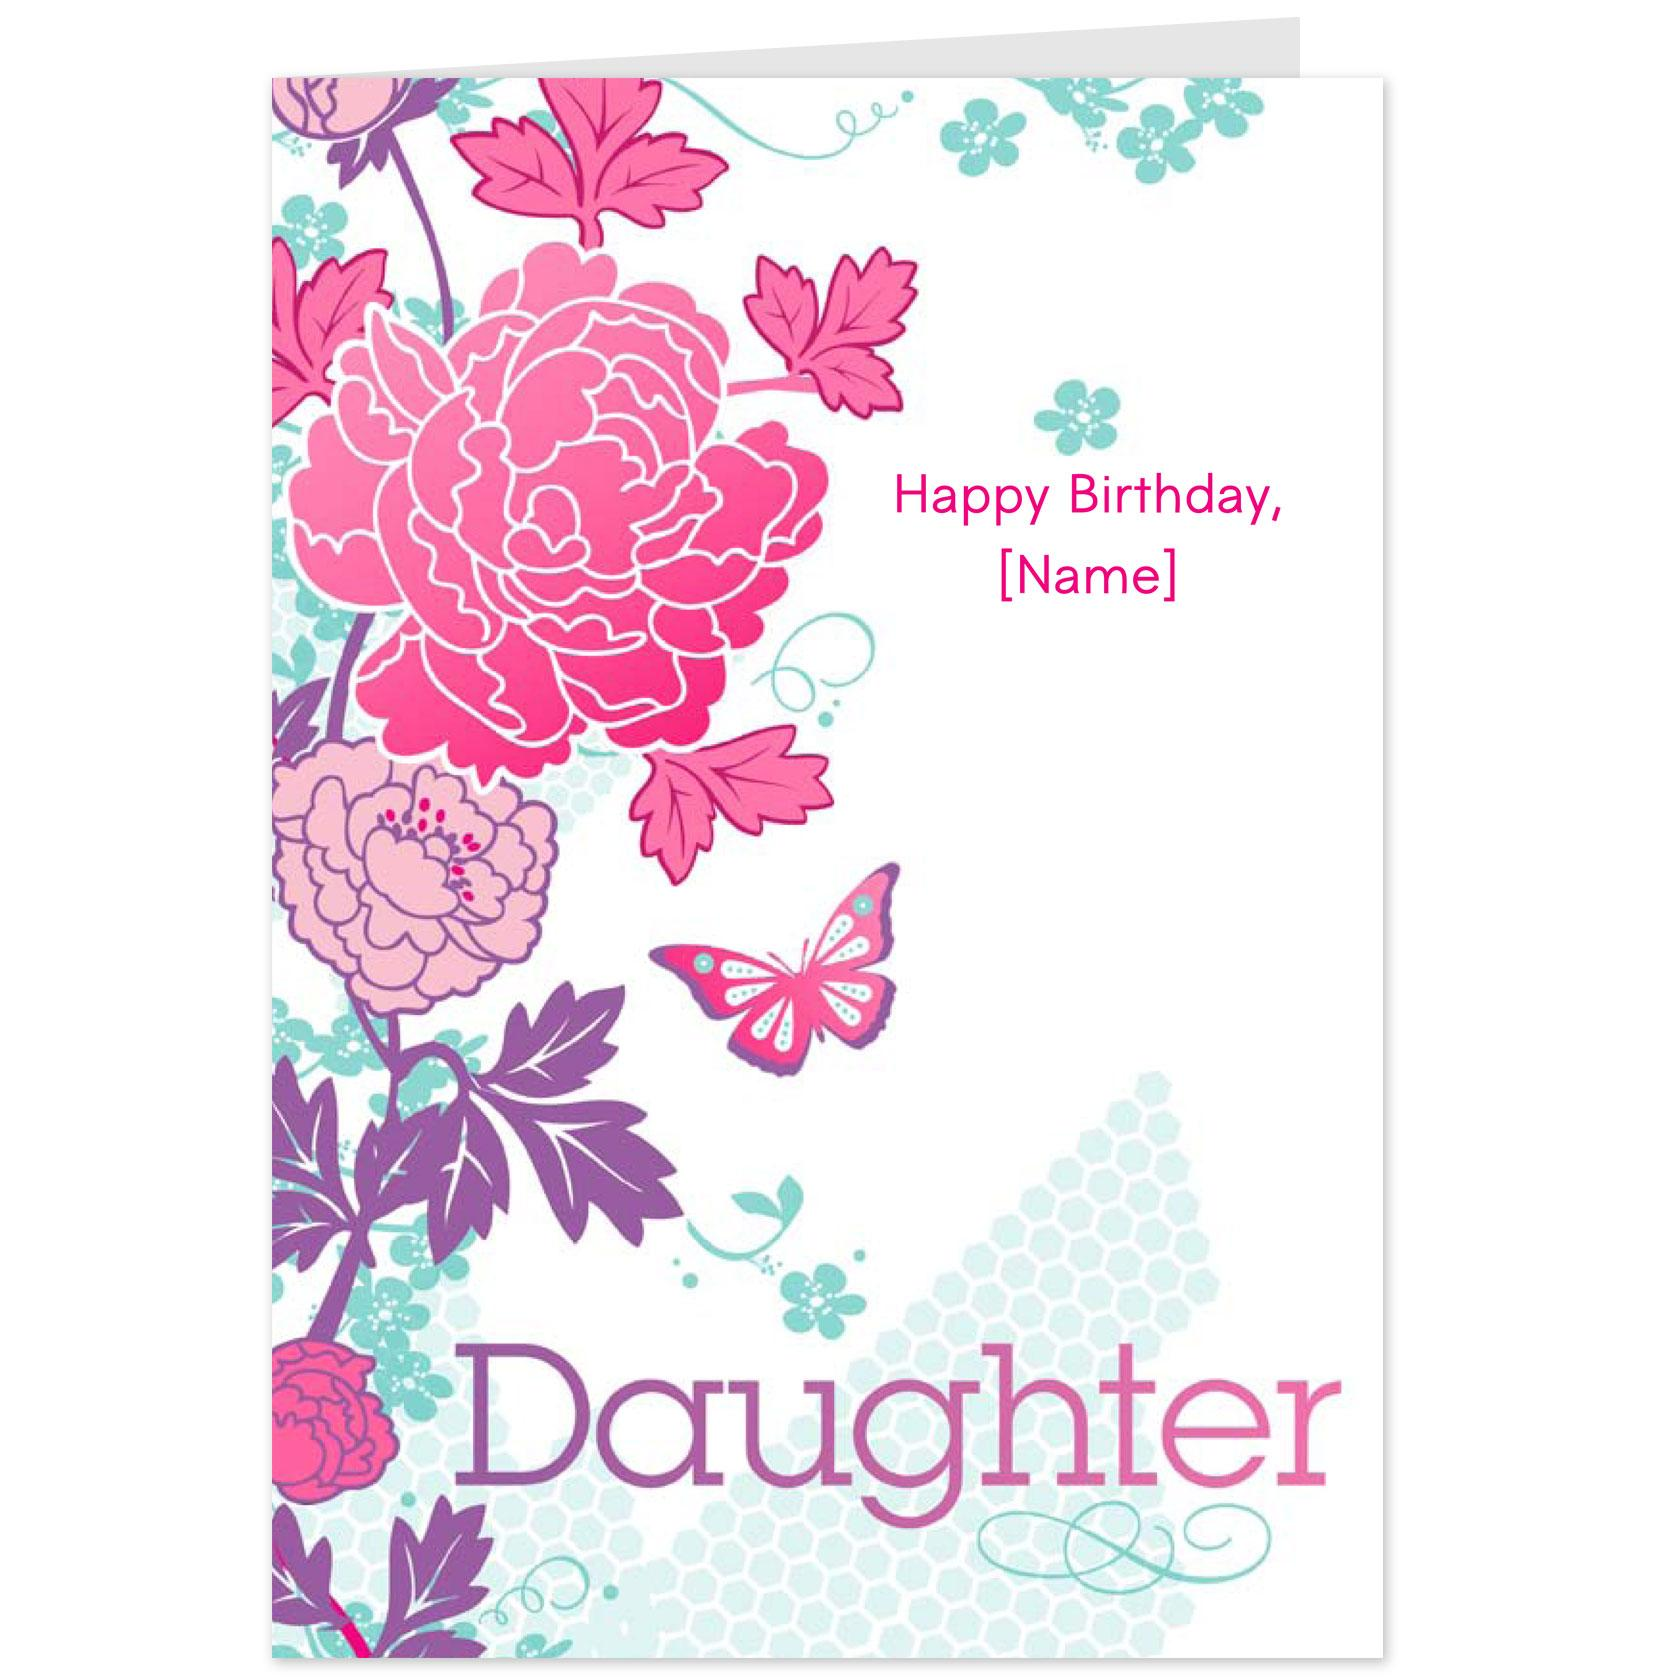 Hallmark Birthday Quotes For Her. QuotesGram